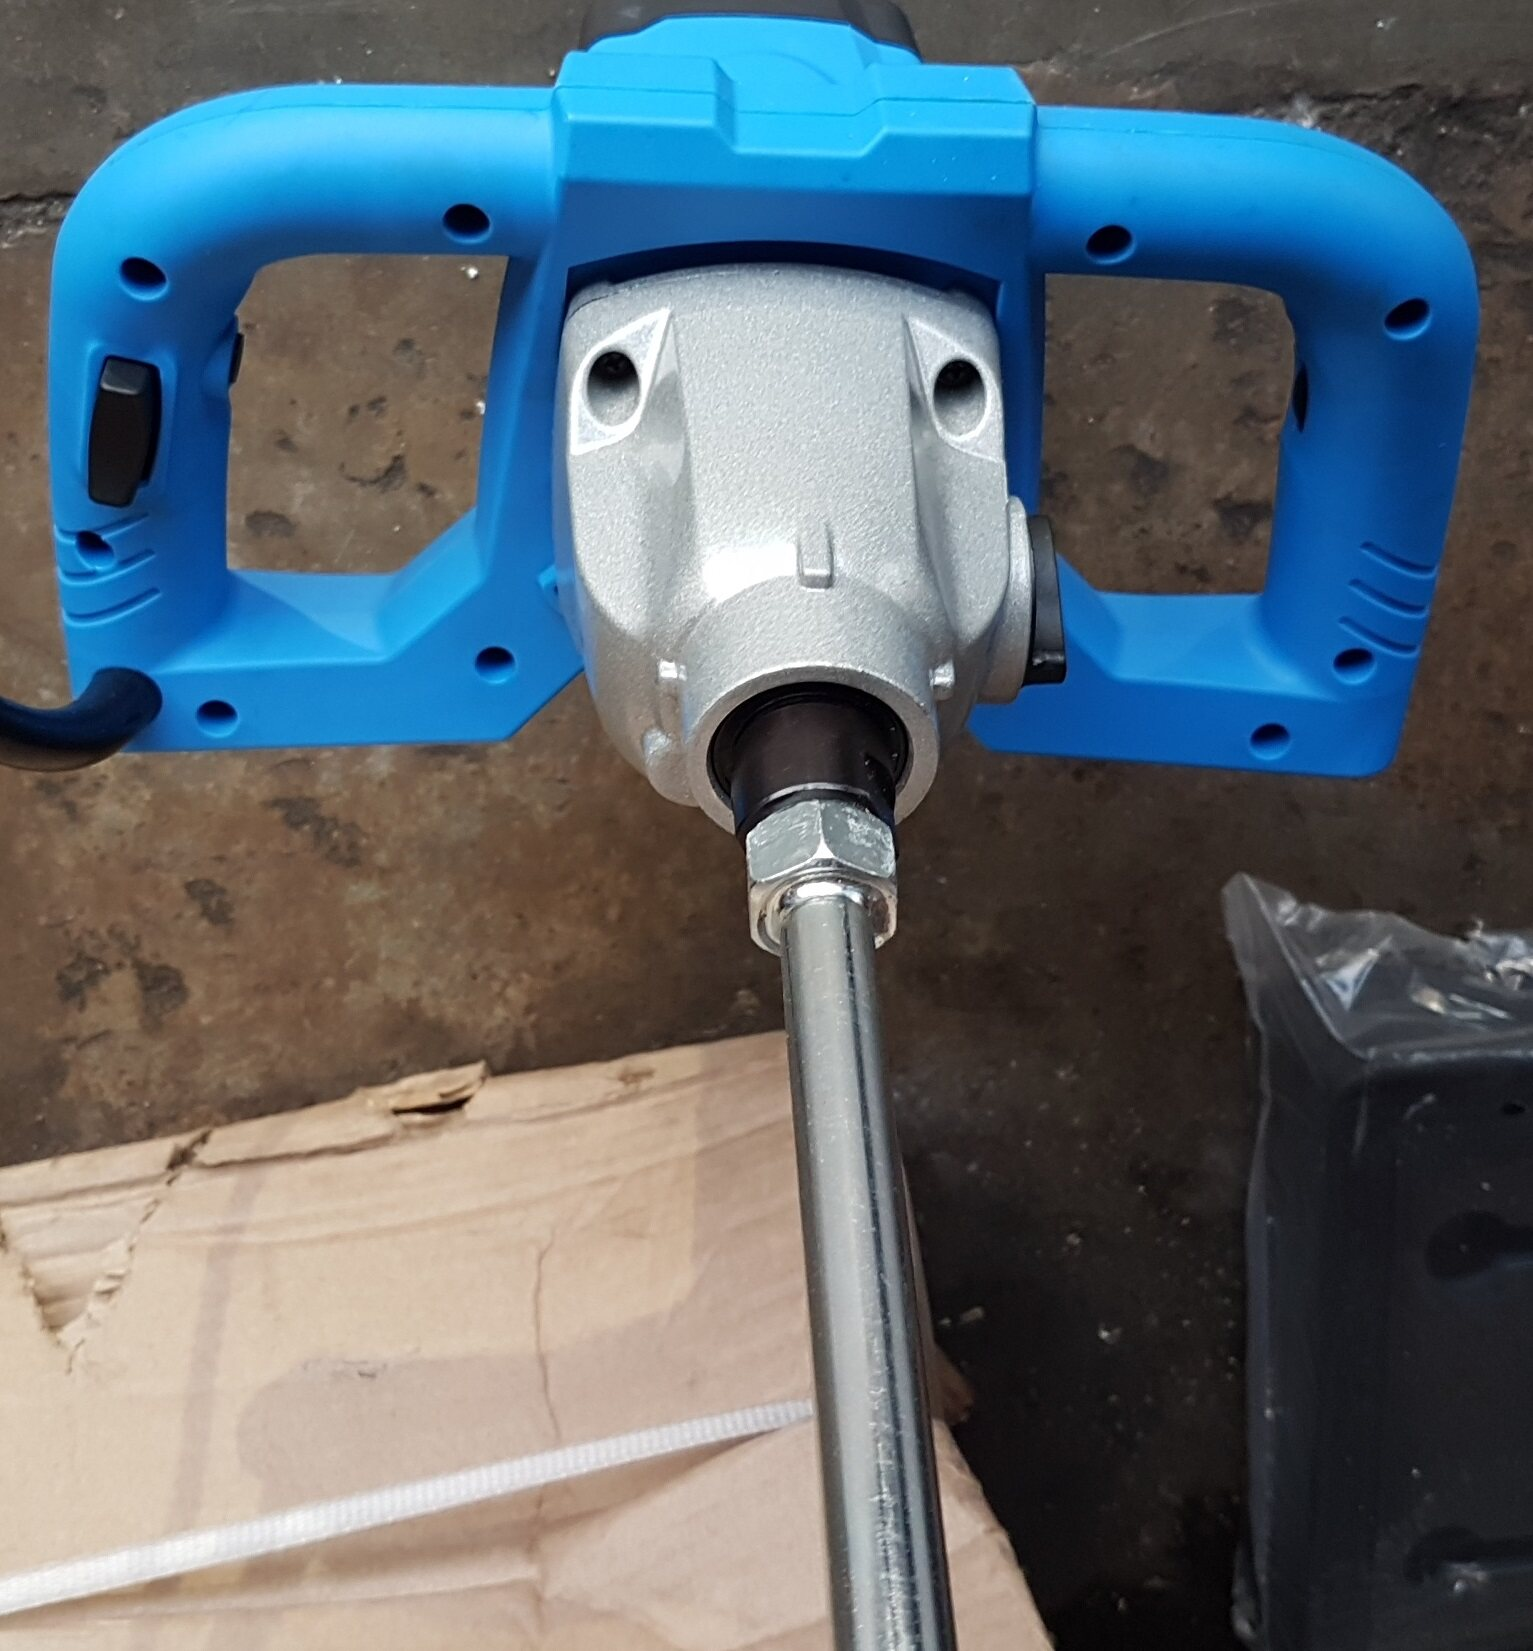 tank paint color pipe tube long joint mini electric mixer flour blower blow pump motor lift drilling grinder drill concrete sand cement mix mixing carry handle roll roller rolling adjust speed control hold holder holding power tool portable barrow tank